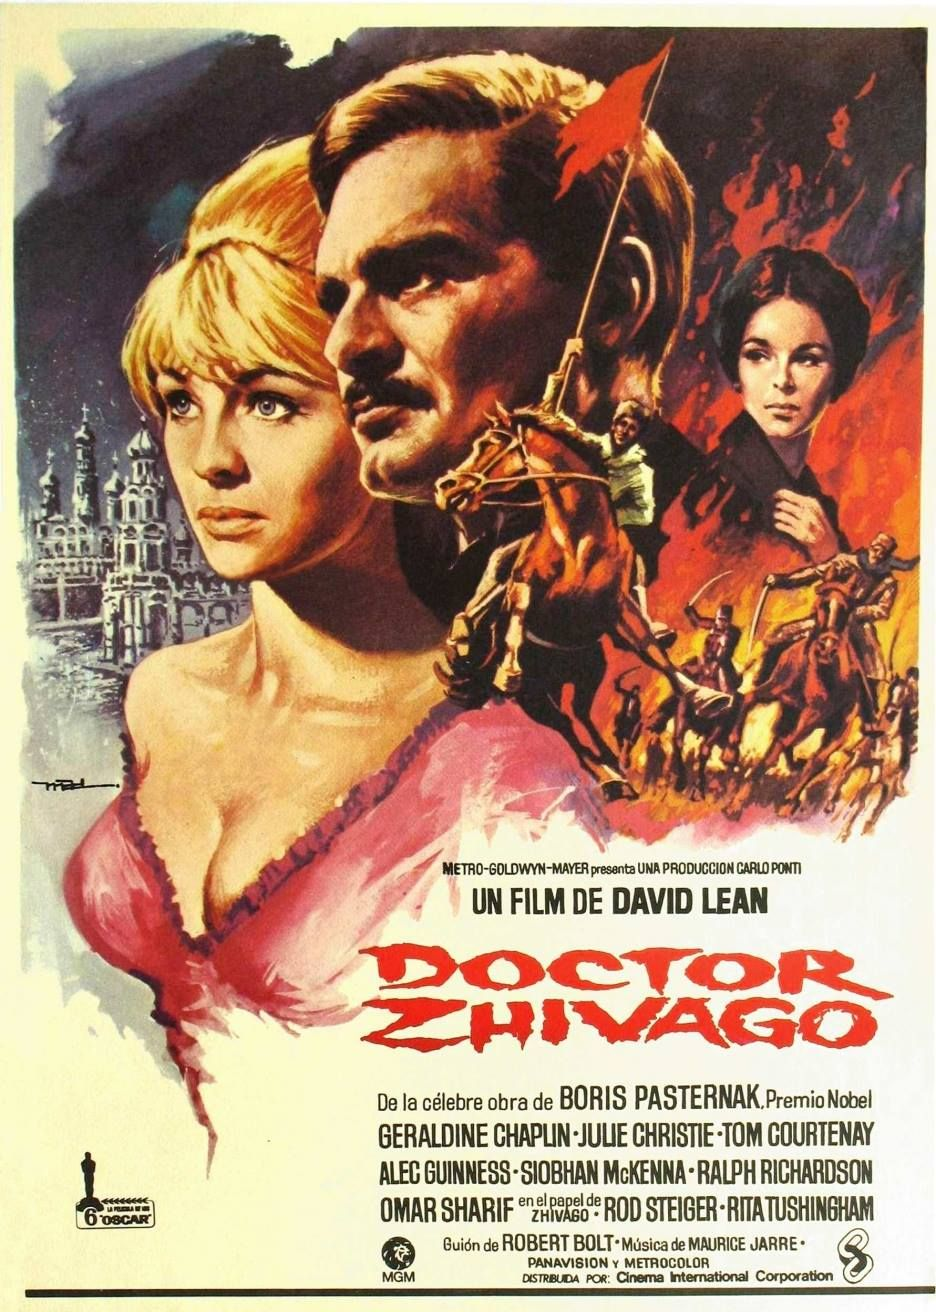 Doctor Zhivago (1965) - Directed by: David LeanStarring: Omar Sharif, Julie Christie, Geraldine ChaplinRated: PG-13Running Time: 3h 17mTMM Score: 3 StarsSTRENGTHS: ProductionWEAKNESSES: Personal Connection